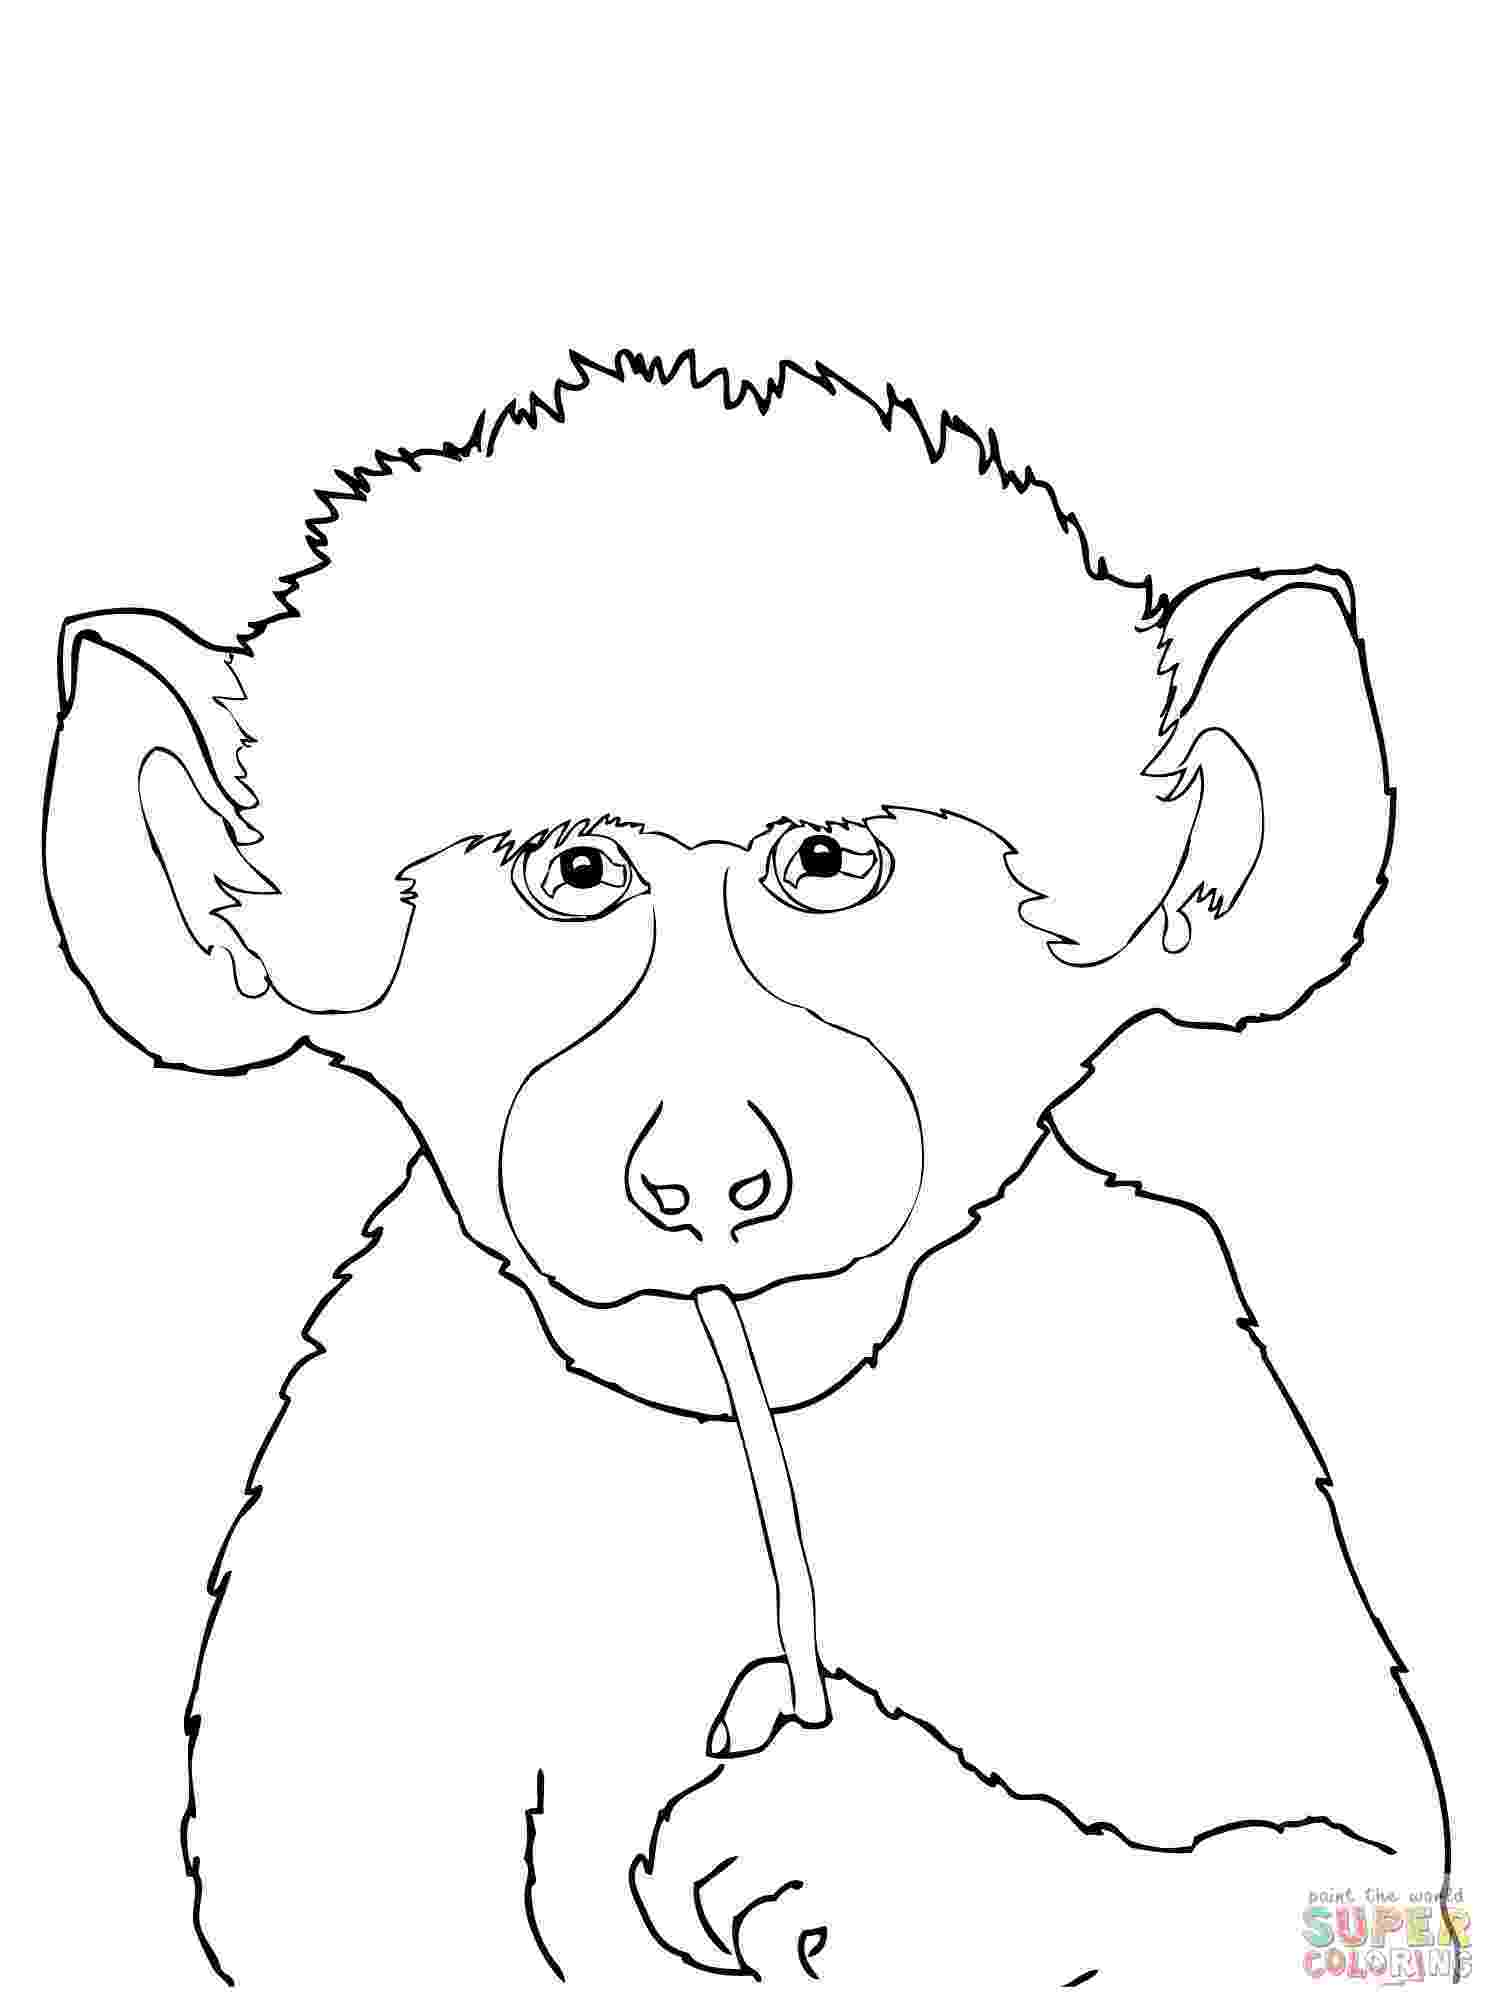 a coloring sheet mm coloring pages to download and print for free a coloring sheet